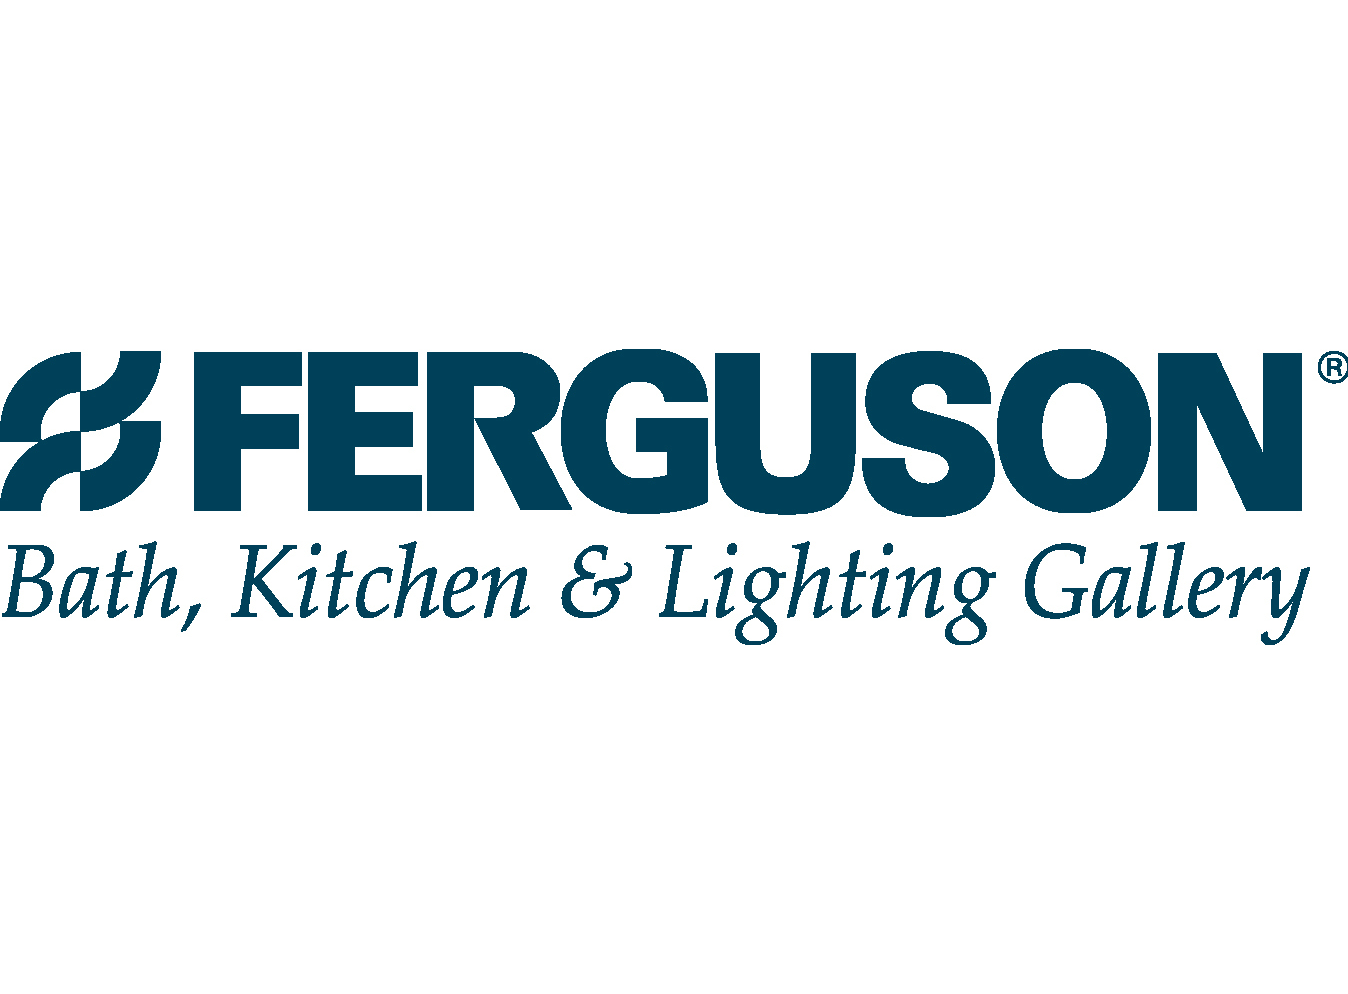 Ferguson Bath Kitchen Lighting Gallery Wilmington Nc